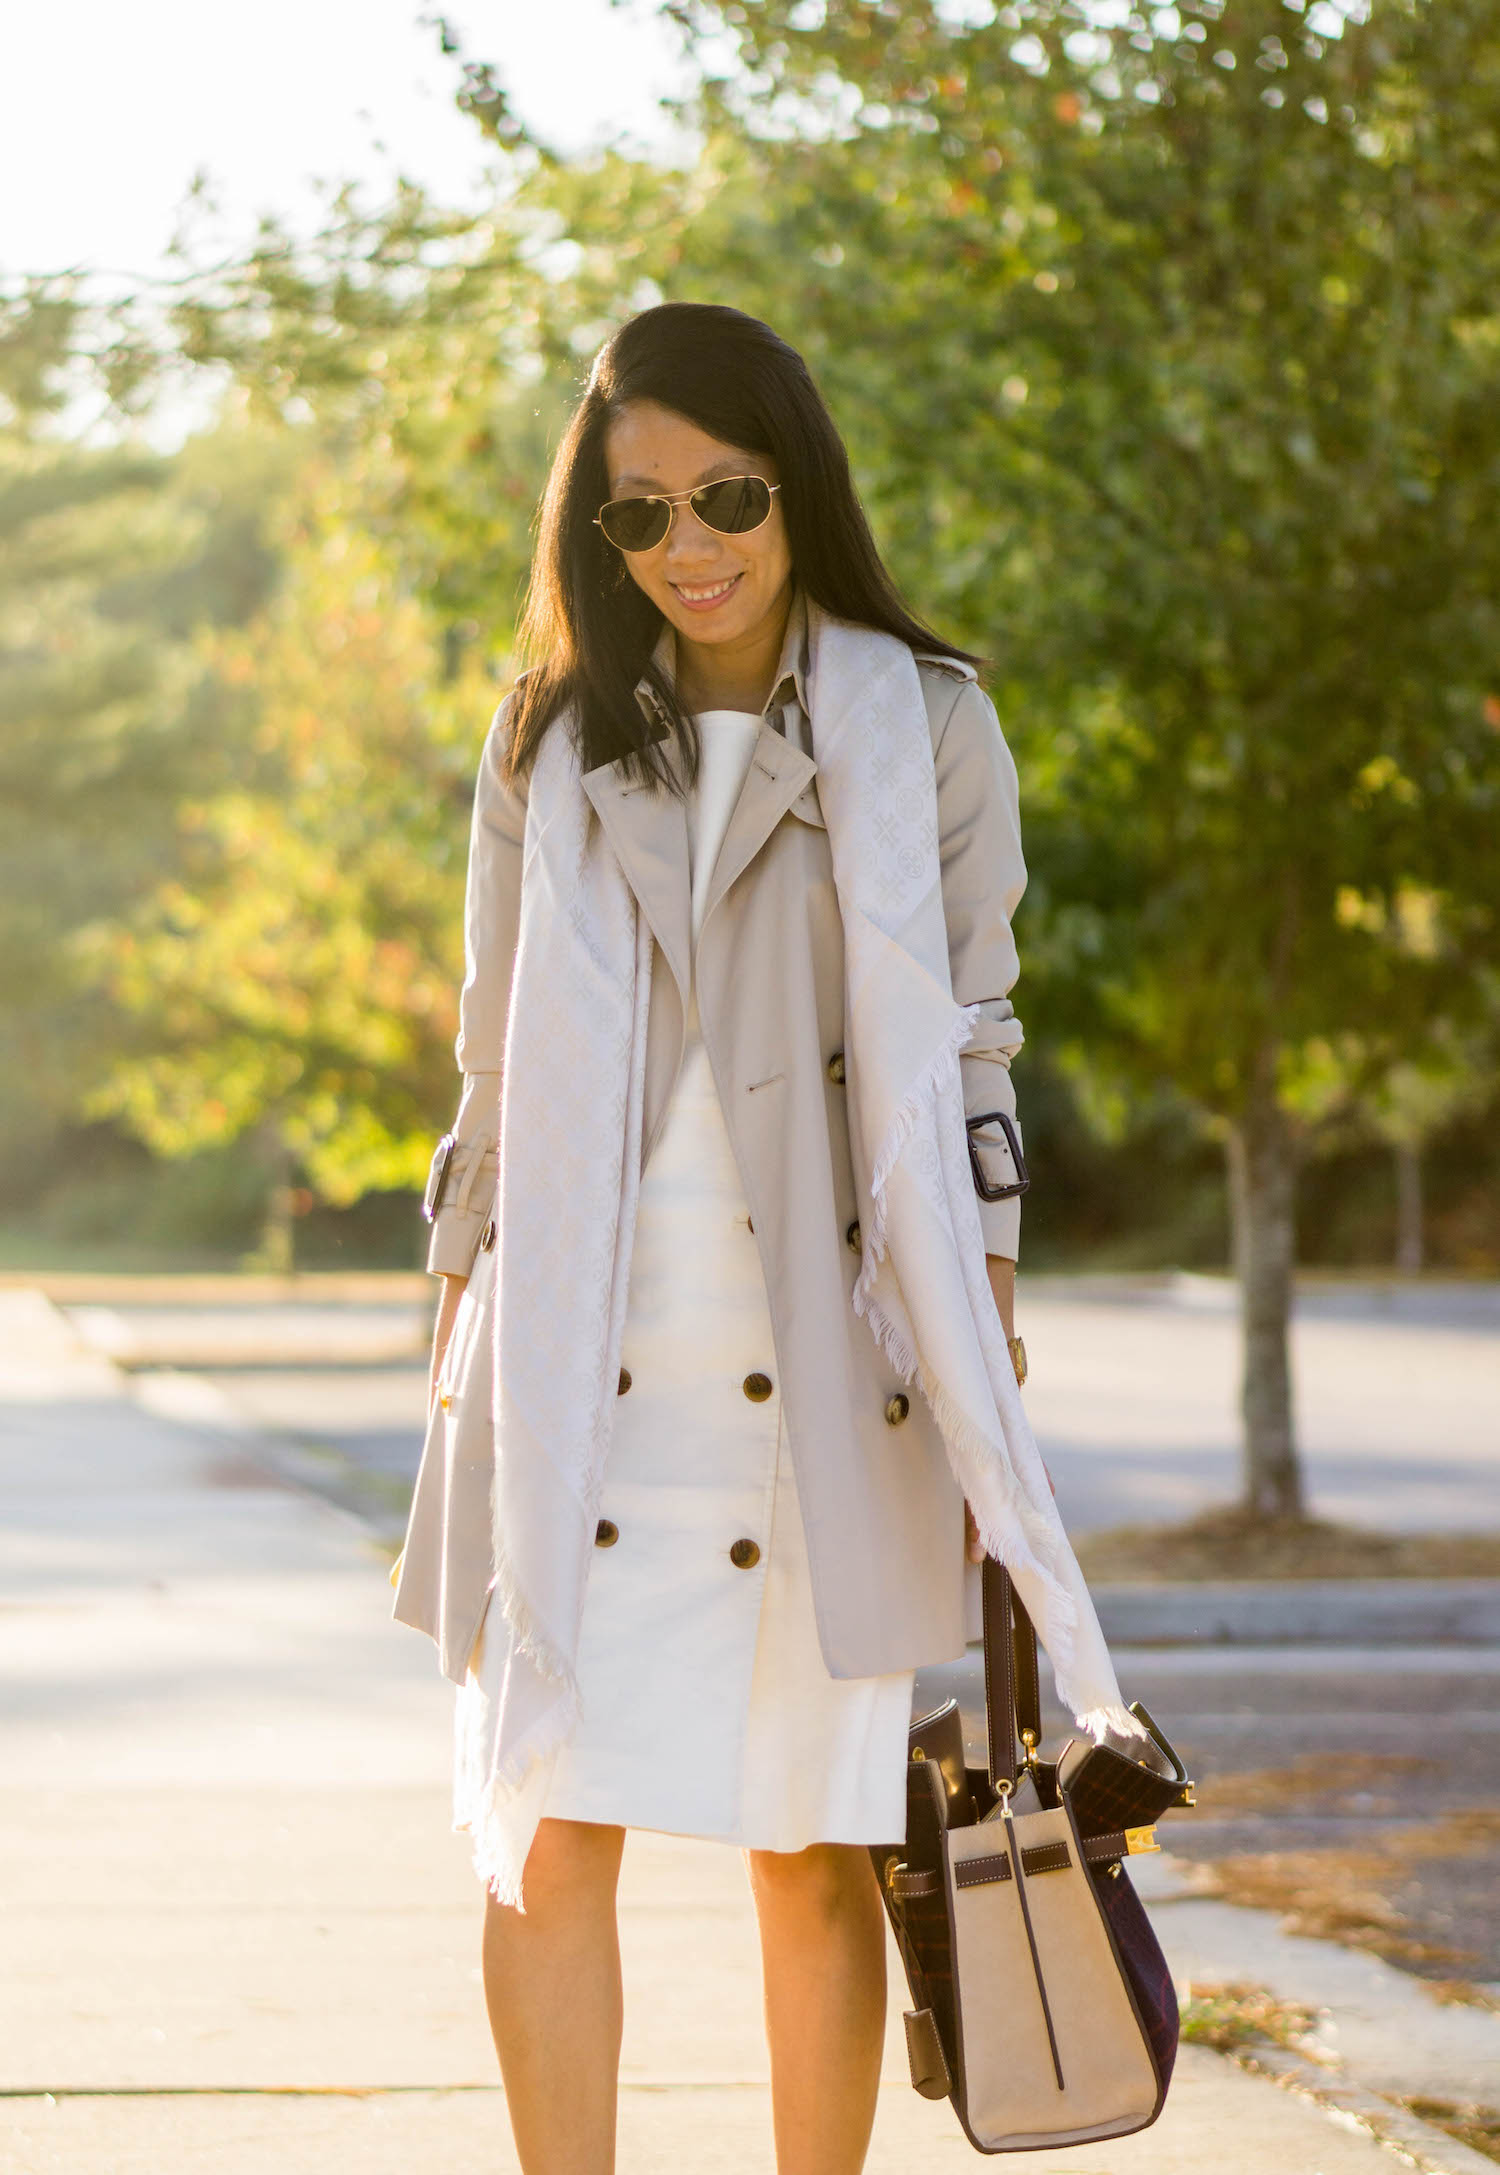 Burberry Marystow trench coat, Tory Burch traveler scarf, Tory Burch Whitney watch, J.Crew double-breasted sleeveless sheath dress, Tory Burch Lee Radziwill double bag in checked splittable wool